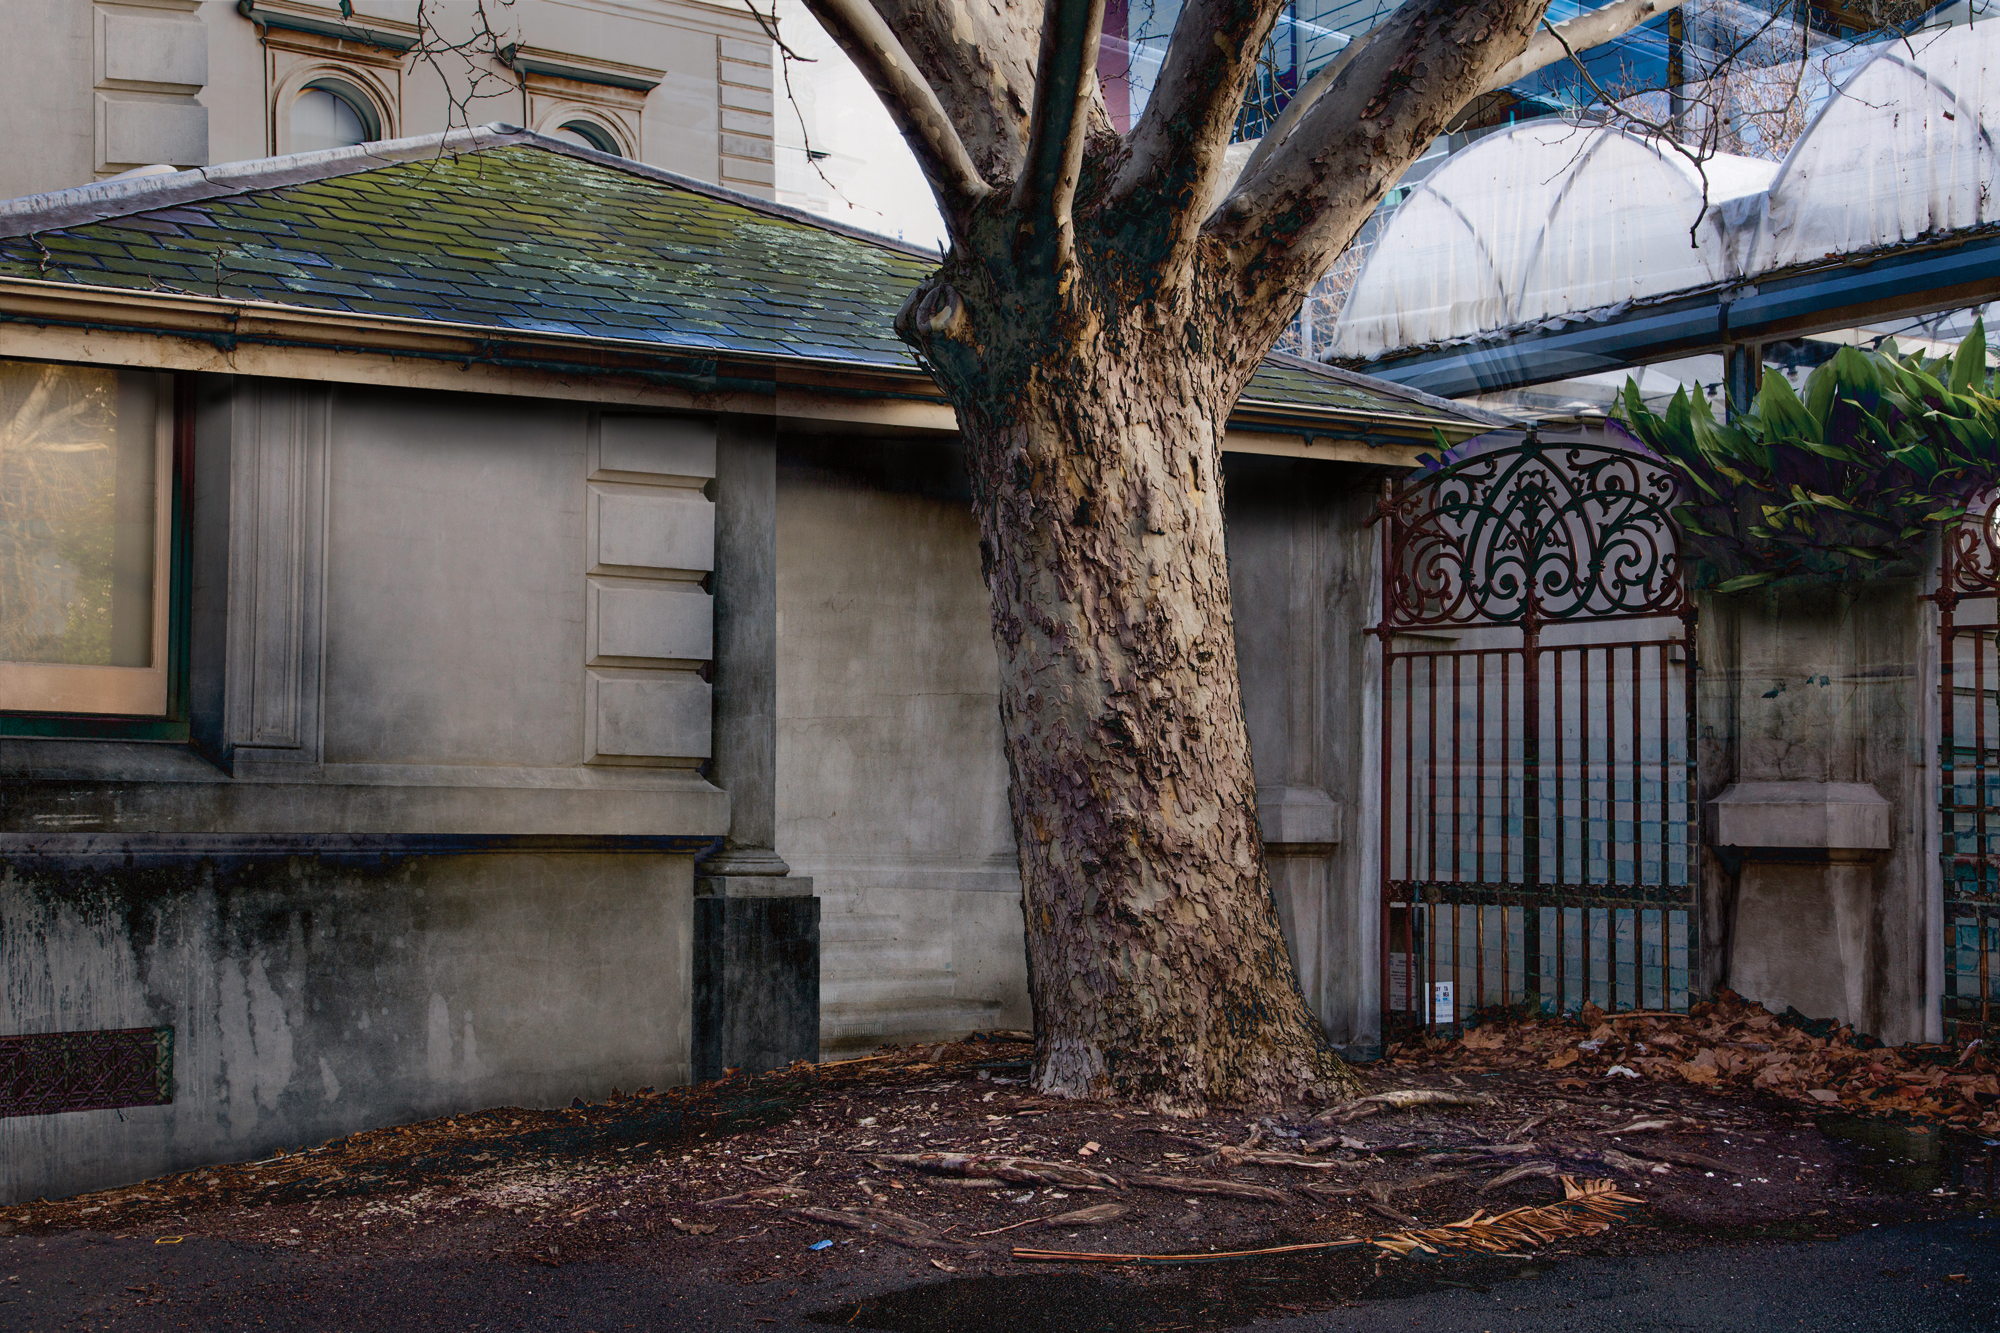 "The Outhouse 2017 Image size 48.77 X 32.51cm, 19.2"" X 12.8"" Combination of two images shot in the grounds of the old Treasury Building, William Street, Melbourne. Archival digital print on Canson Platine rag. Edition of ten. Signed and numbered on print margin with certificate attached to rear of frame. © Christopher Sheils"